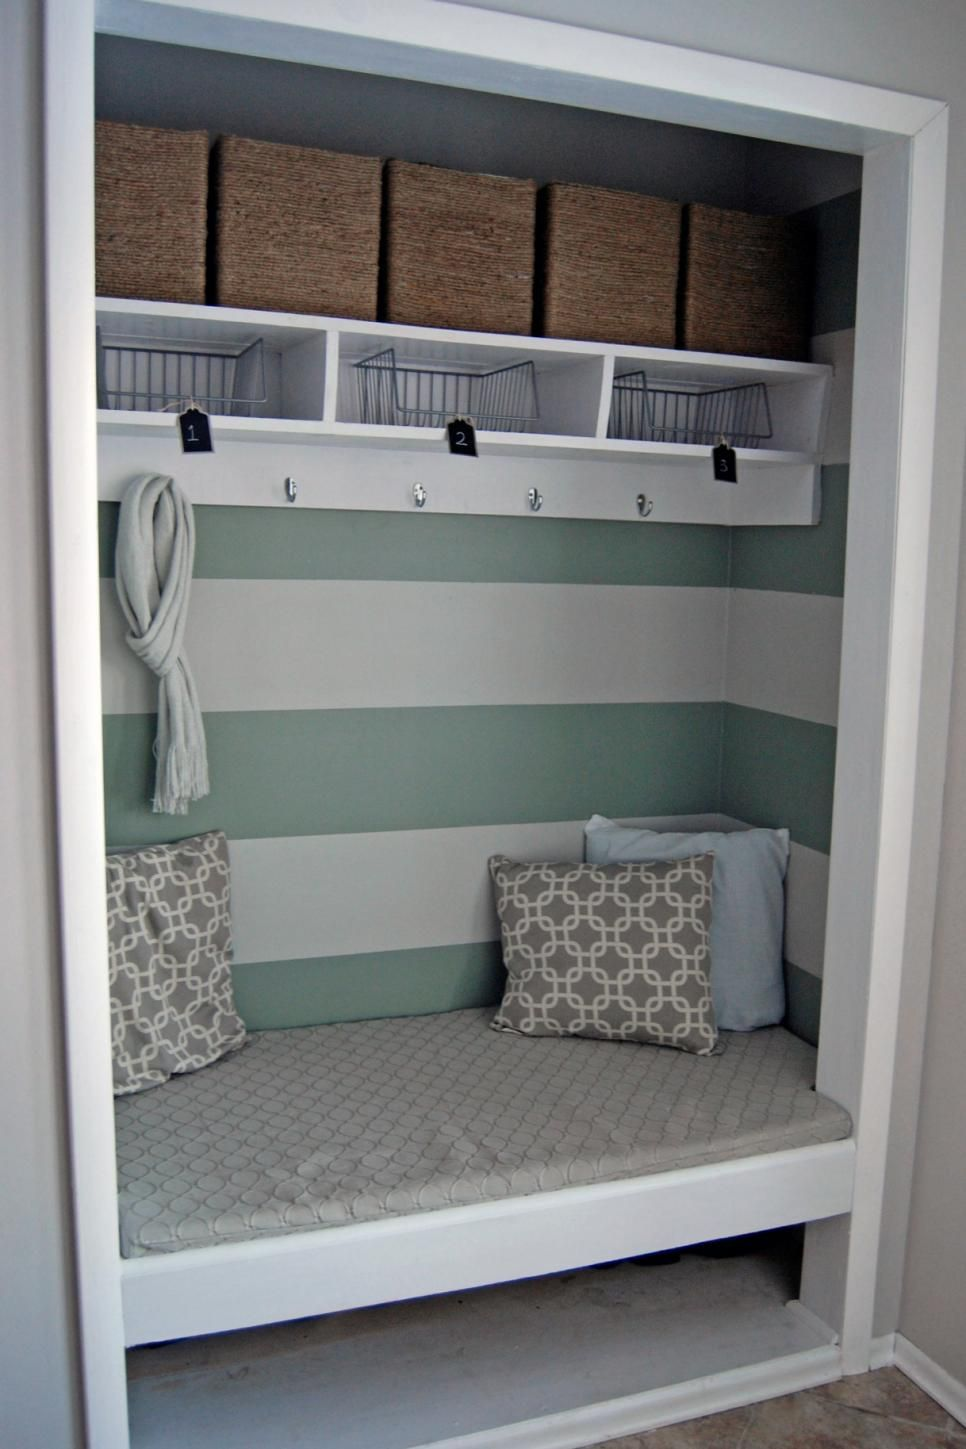 Even the tiniest closet can hold tons of stuff and still